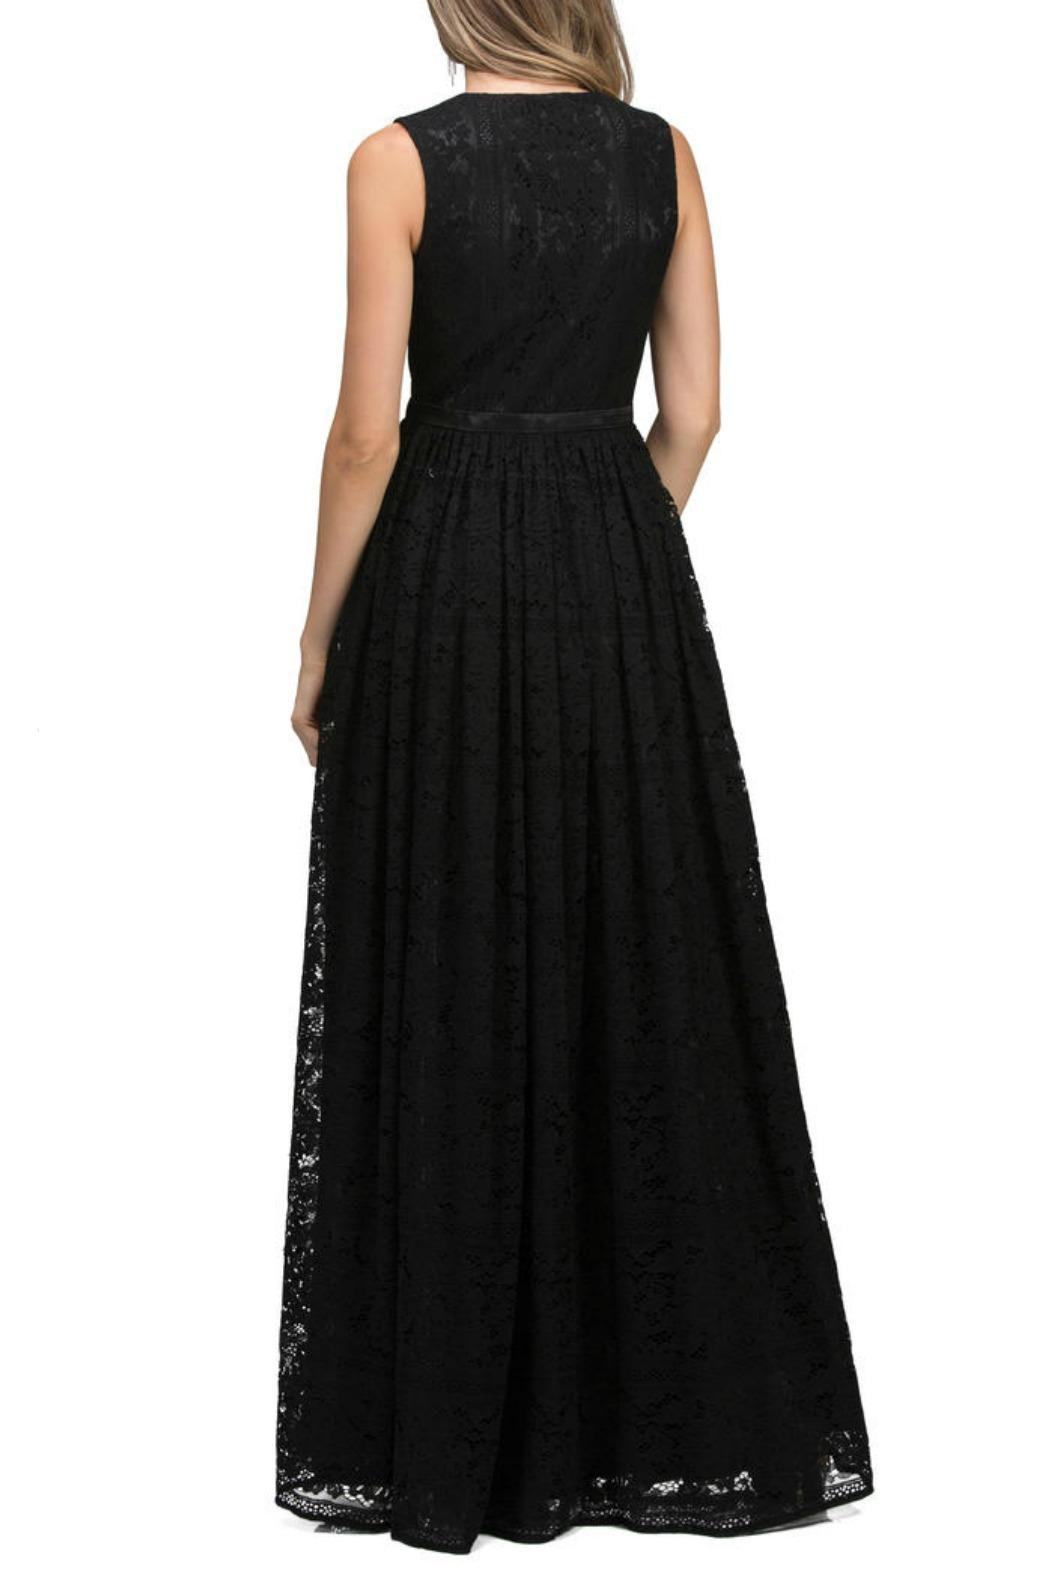 Lucci Lu Lace Empire Gown - Front Full Image